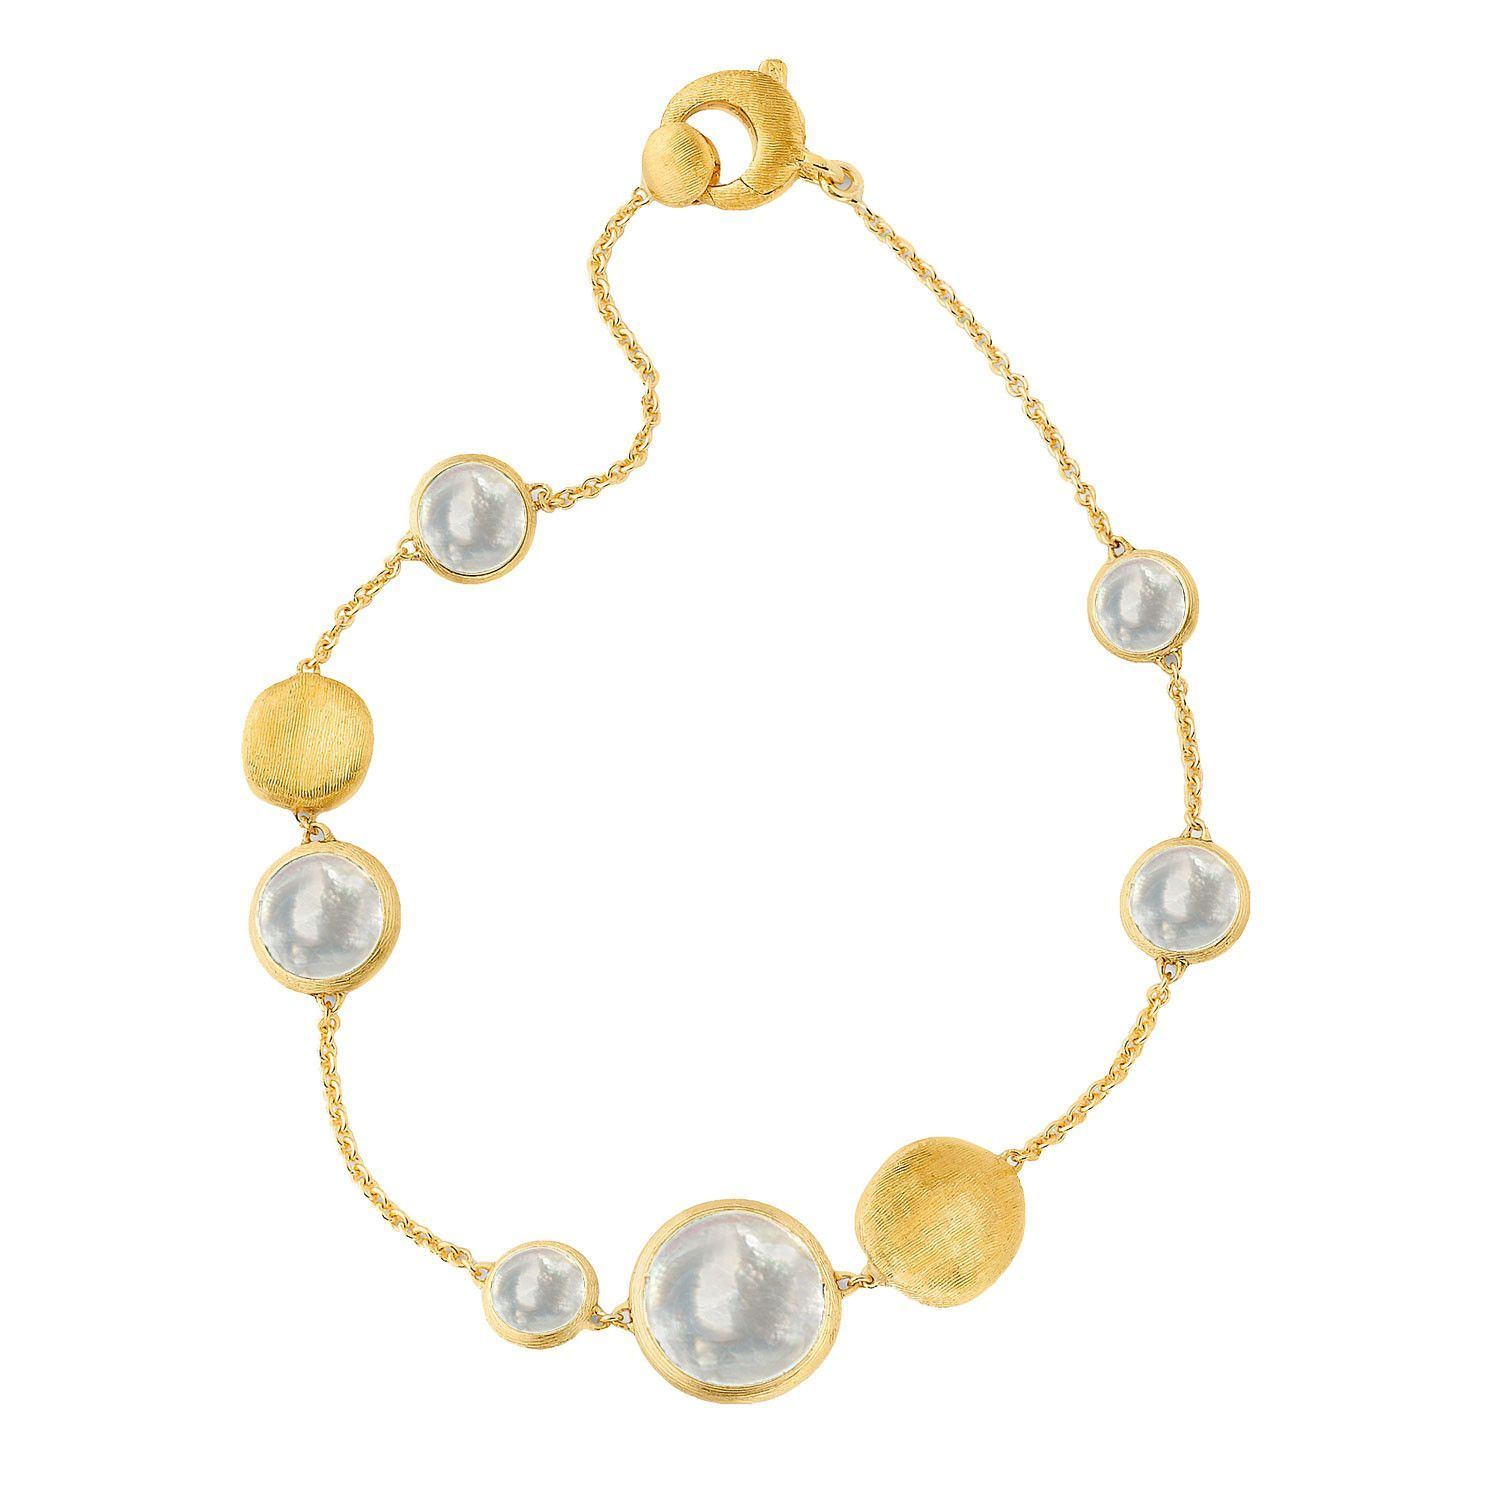 Jaipur Mixed Bead Gold & Mother of Pearl Bracelet